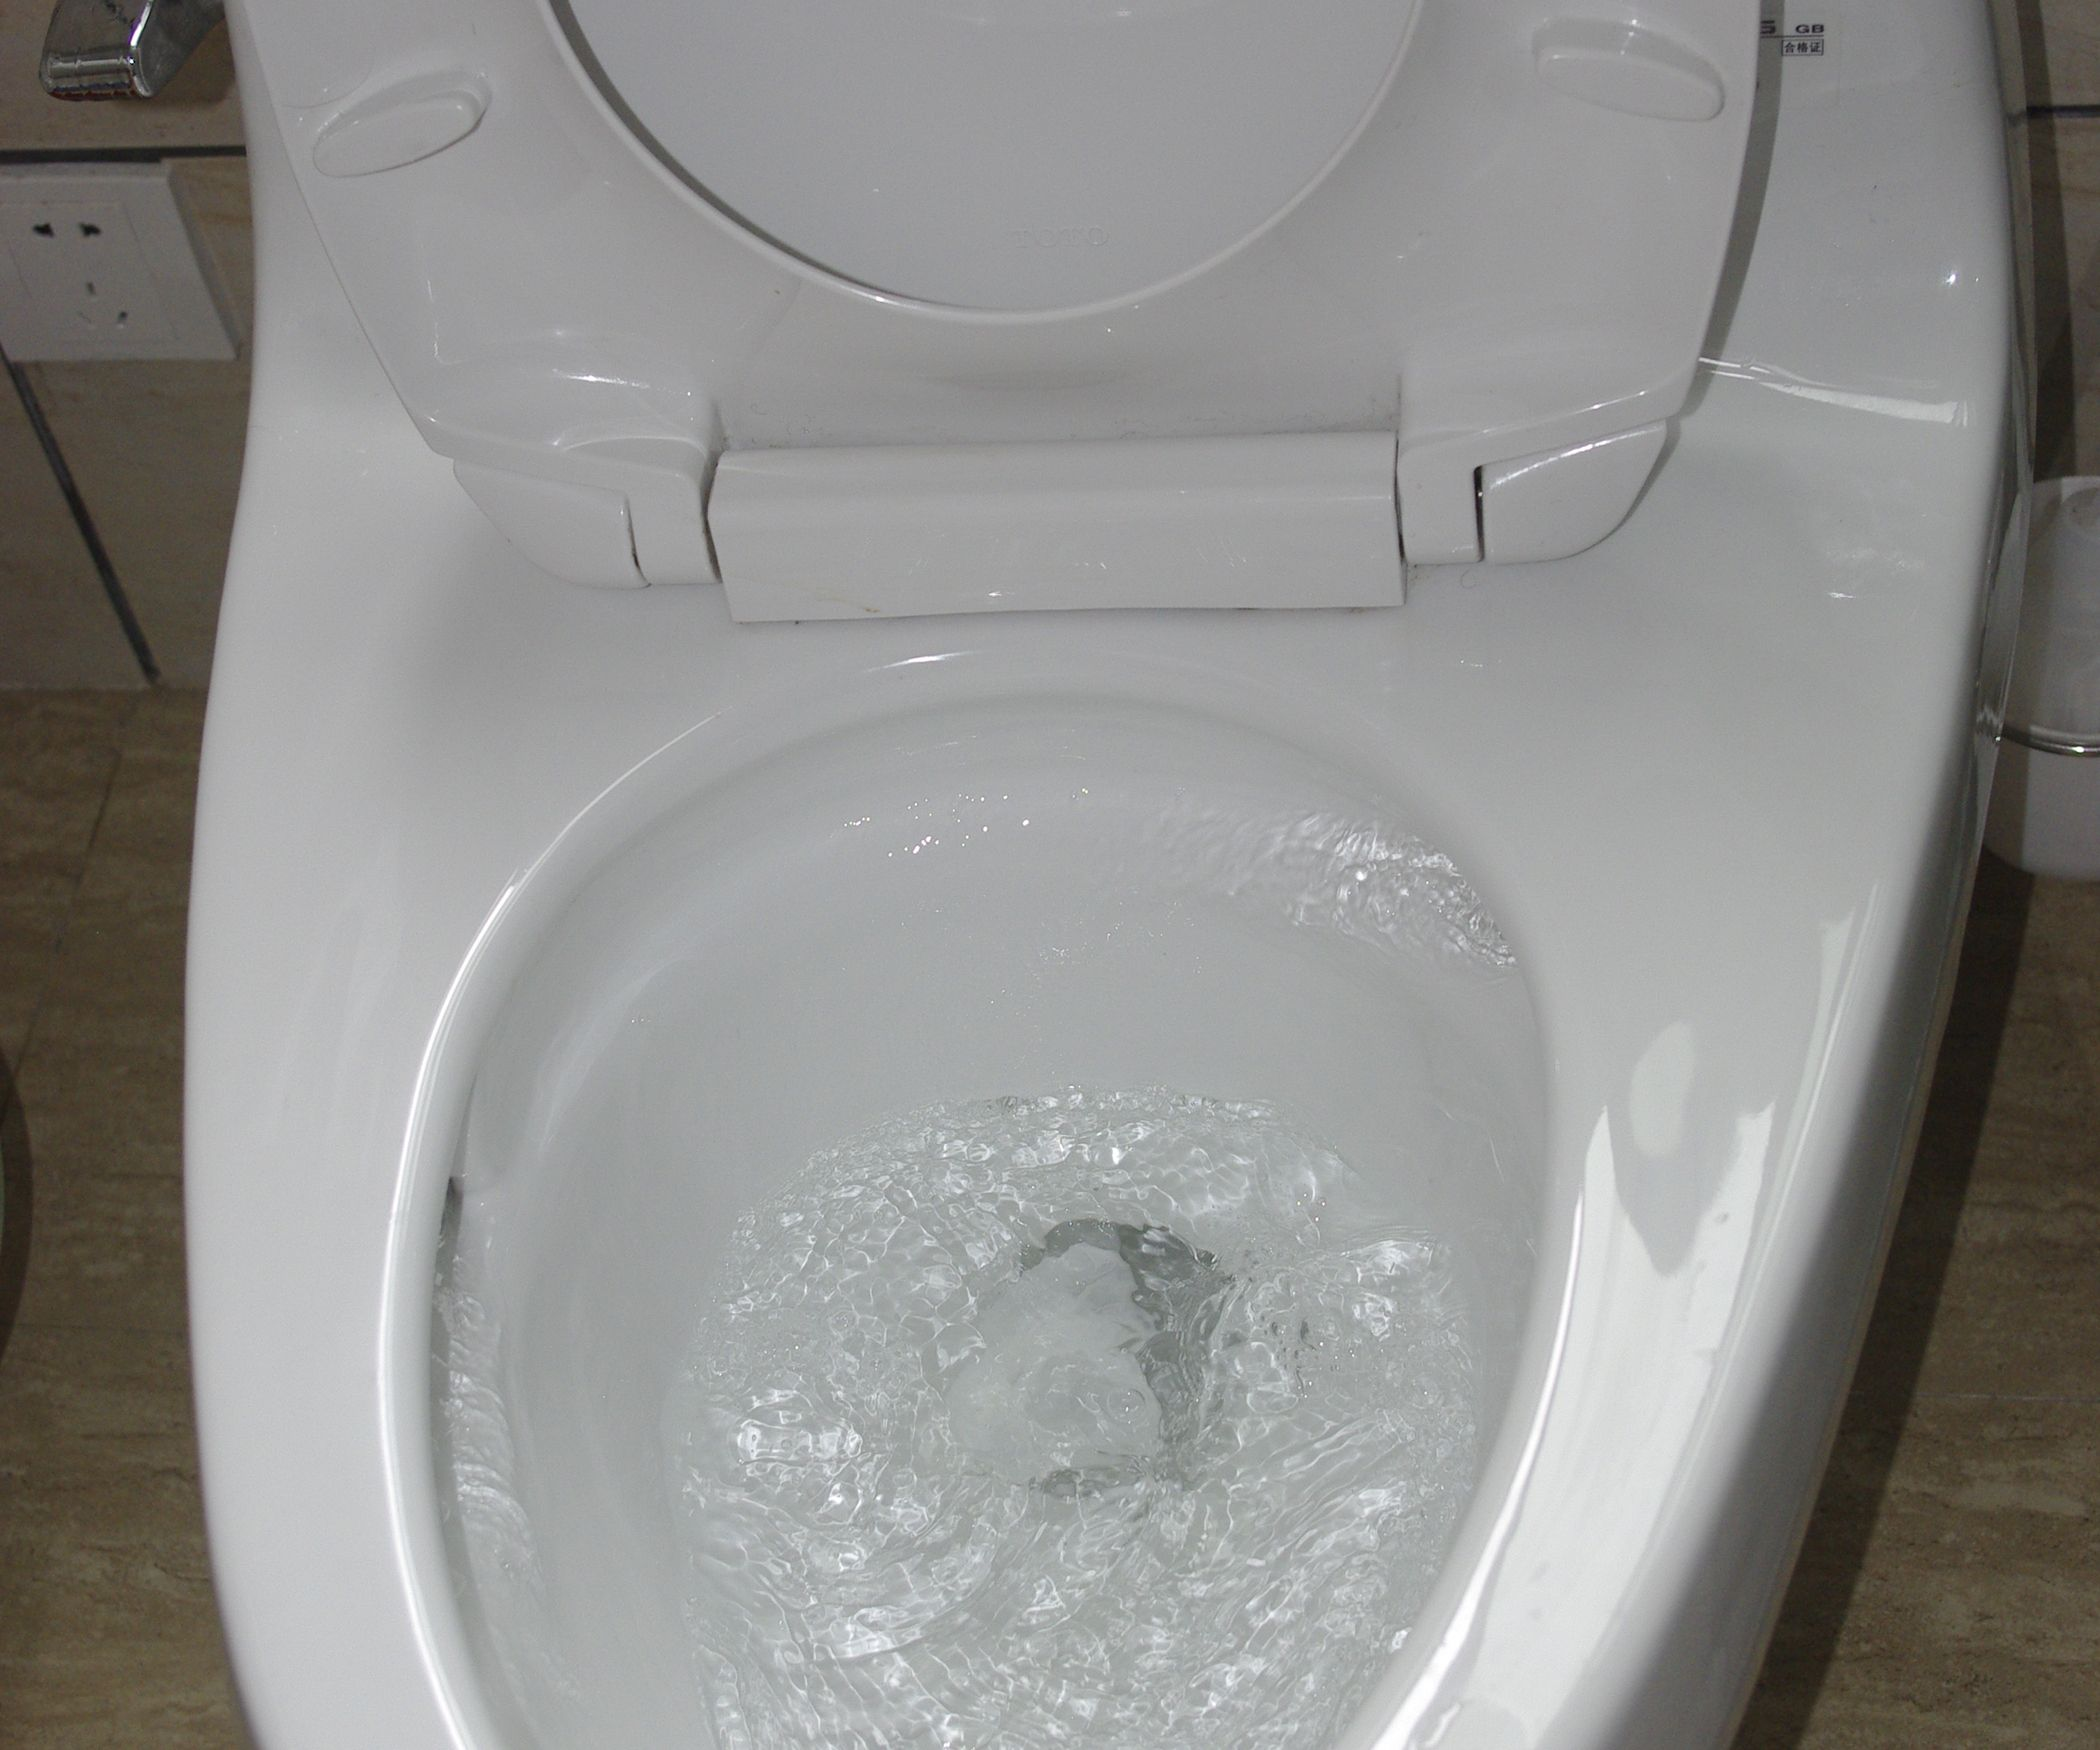 How To Unclog A Blocked Toilet Without A Plunger Toilet Drain Clogged Toilet Unclog Bathtub Drain